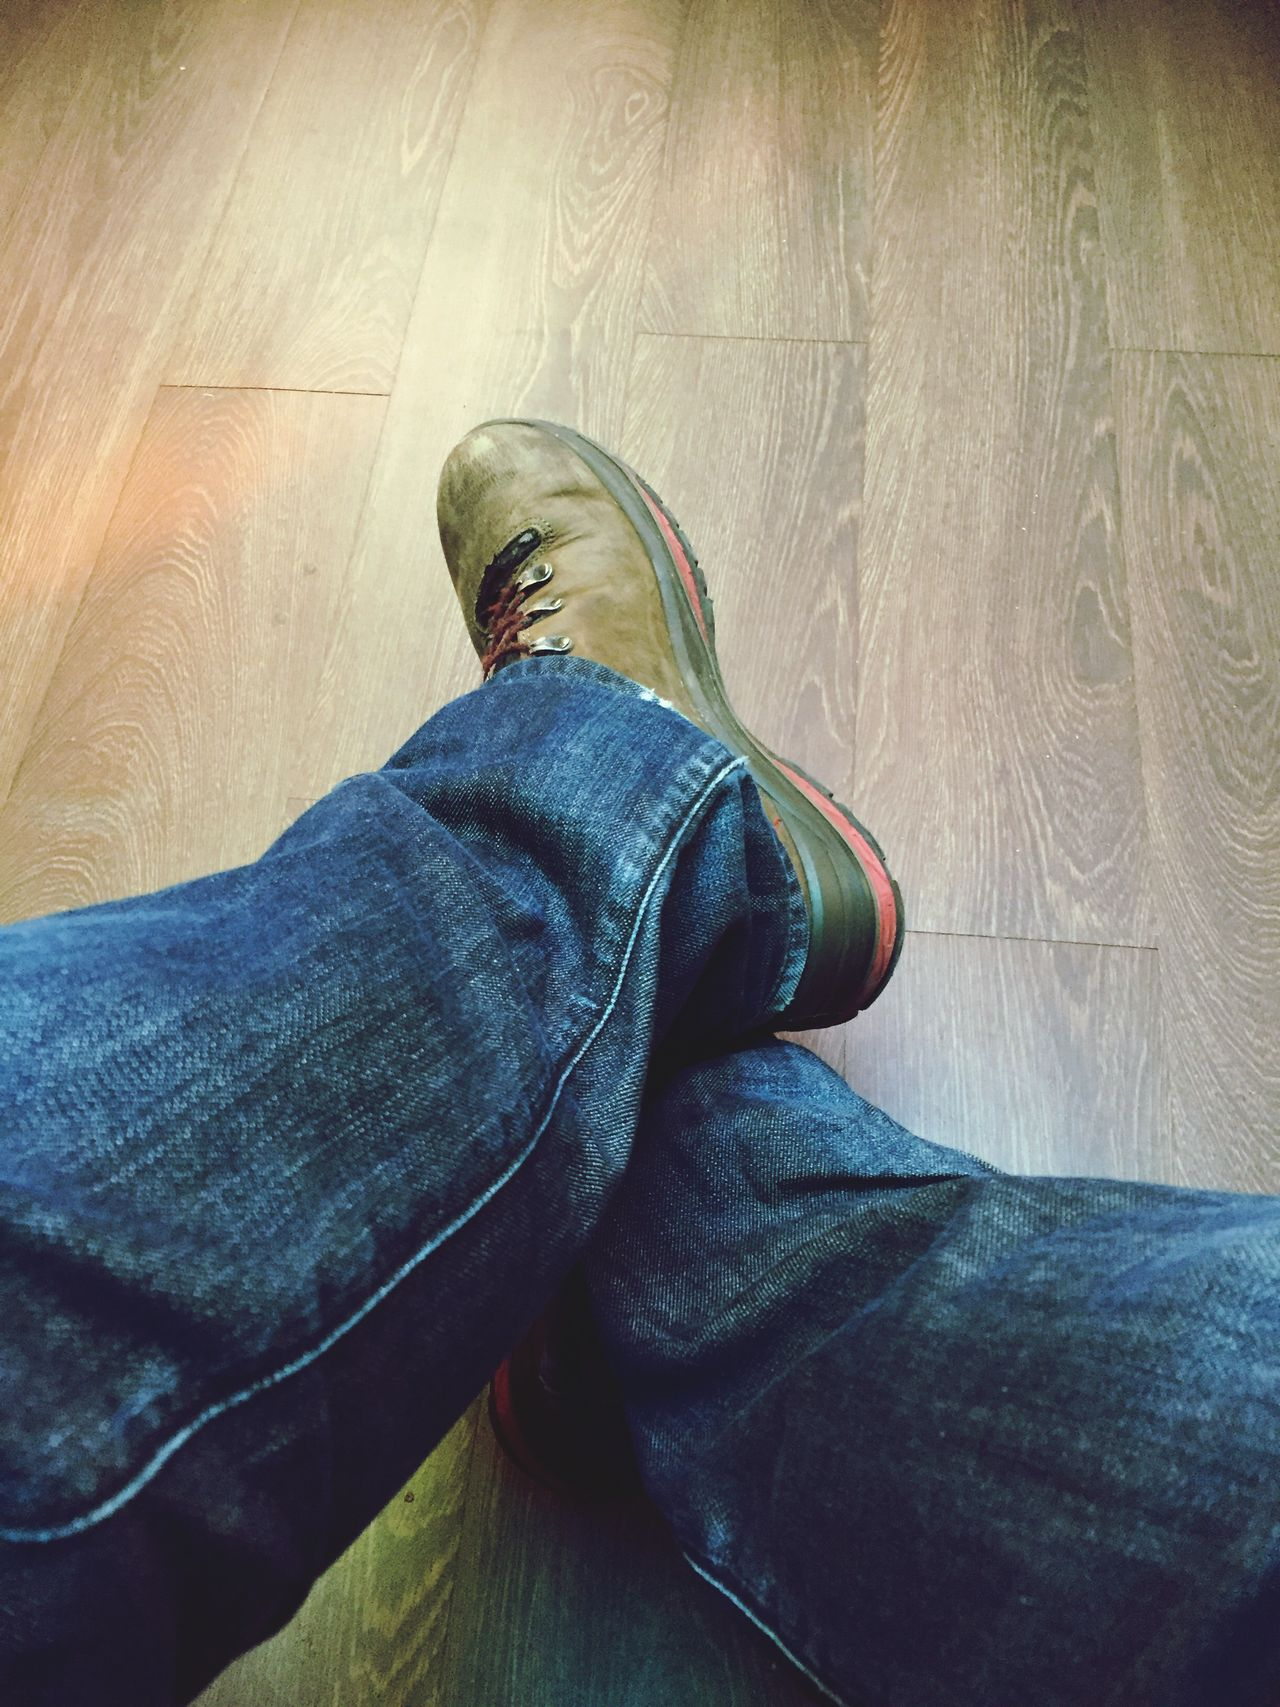 Lifestyles Real People One Person Jeans Human Leg Low Section Personal Perspective Leisure Activity Shoe Human Body Part Sitting Men Day Close-up Indoors  Mammal People Adult Waiting Sitting Waitingroom Shoes Jeans Floor Wood